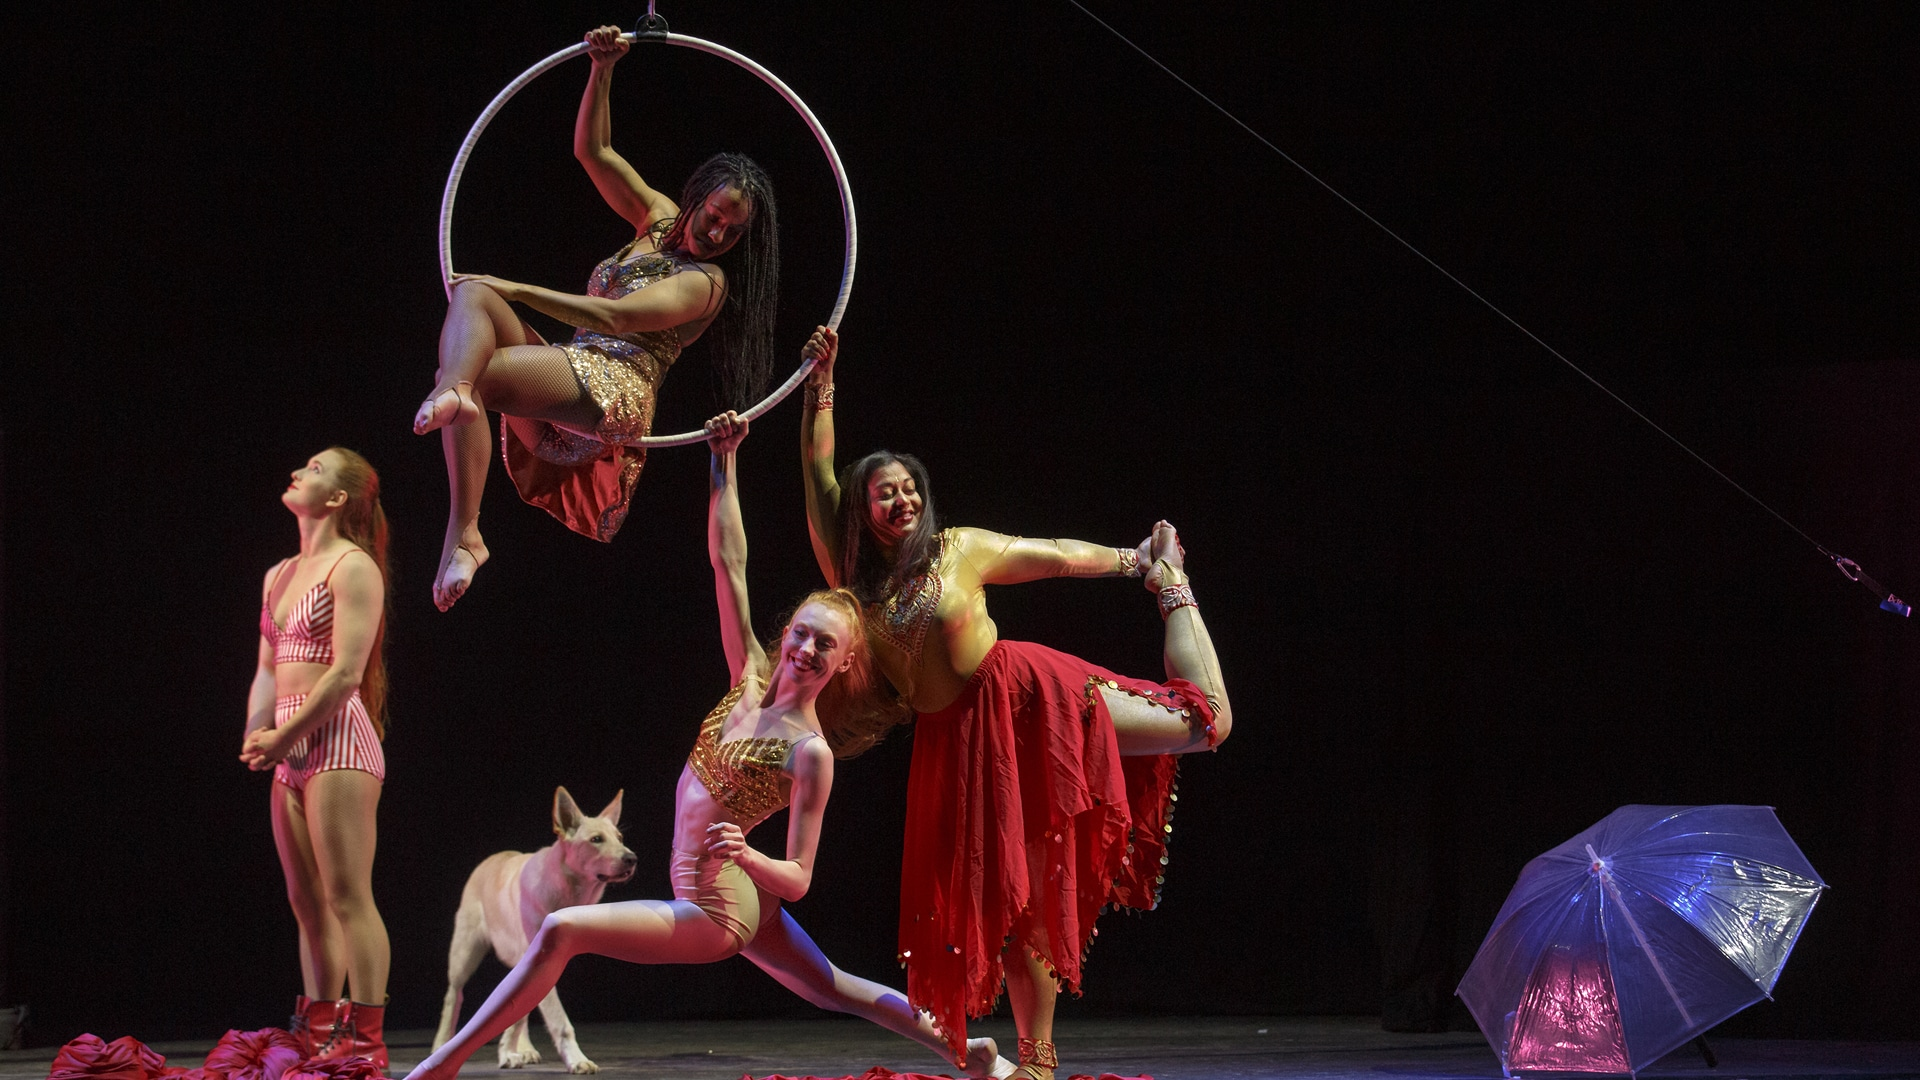 Dancers and aerial performers wearing gold and red costumes with a dog and an umbrella on stage